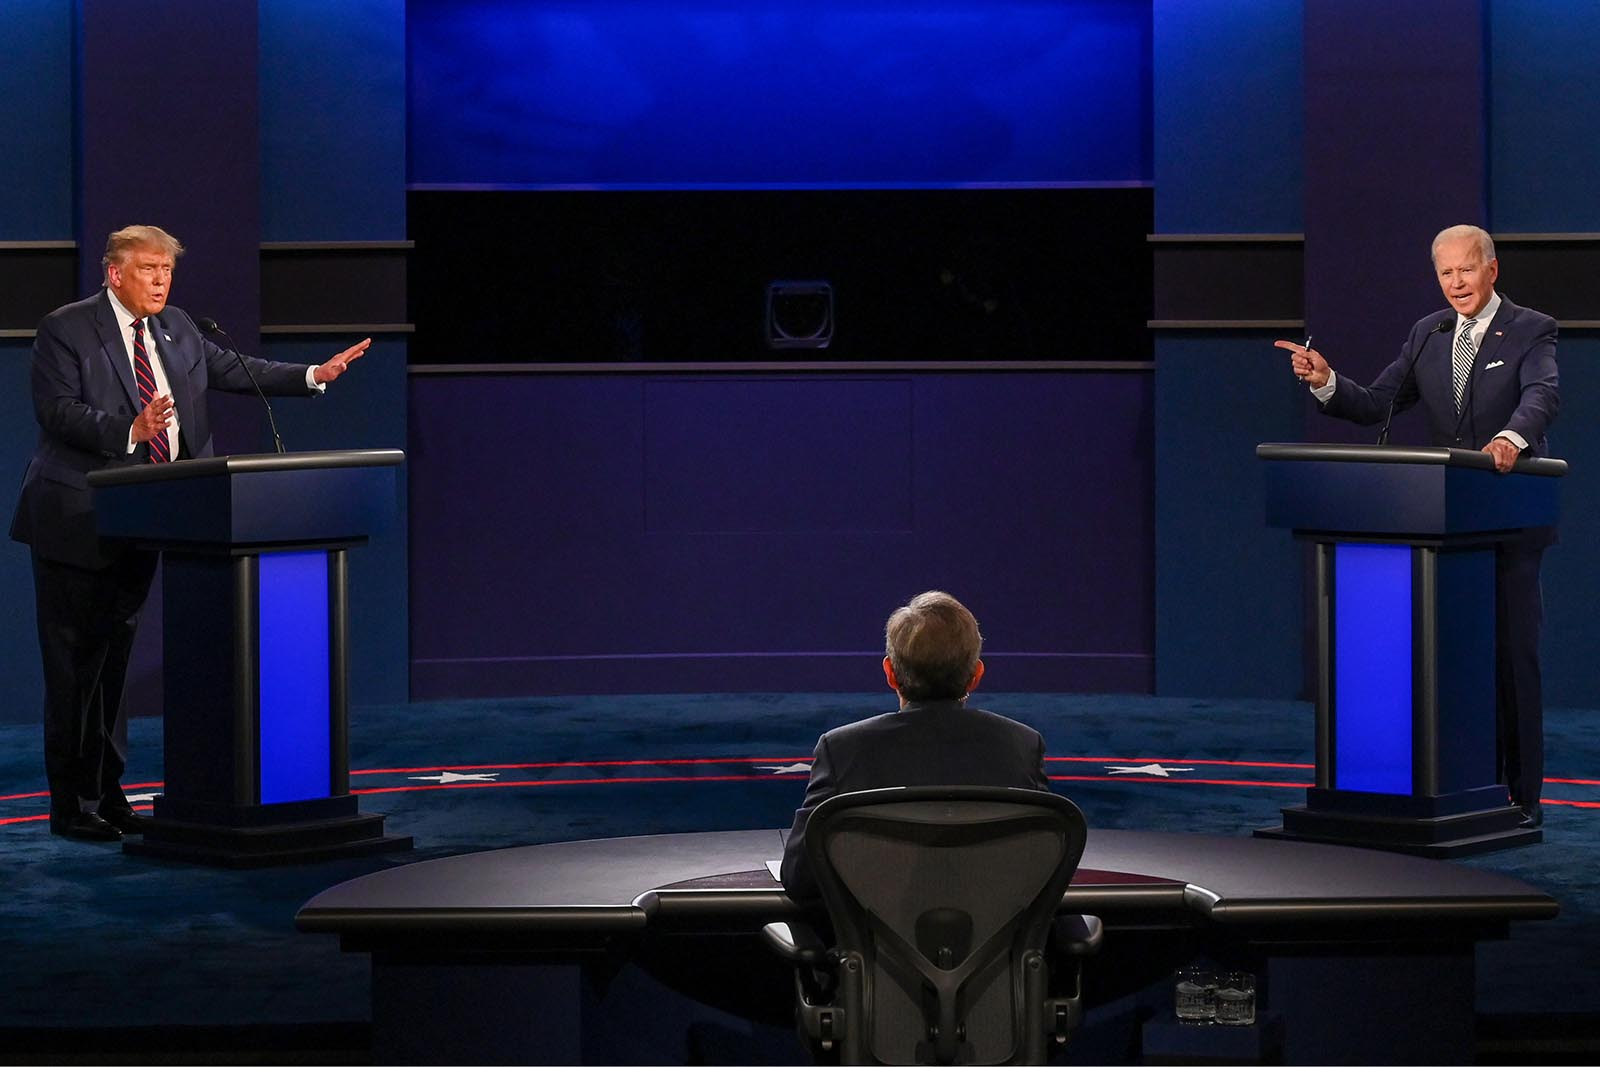 First Presidential Debate News Coverage And Fact Check